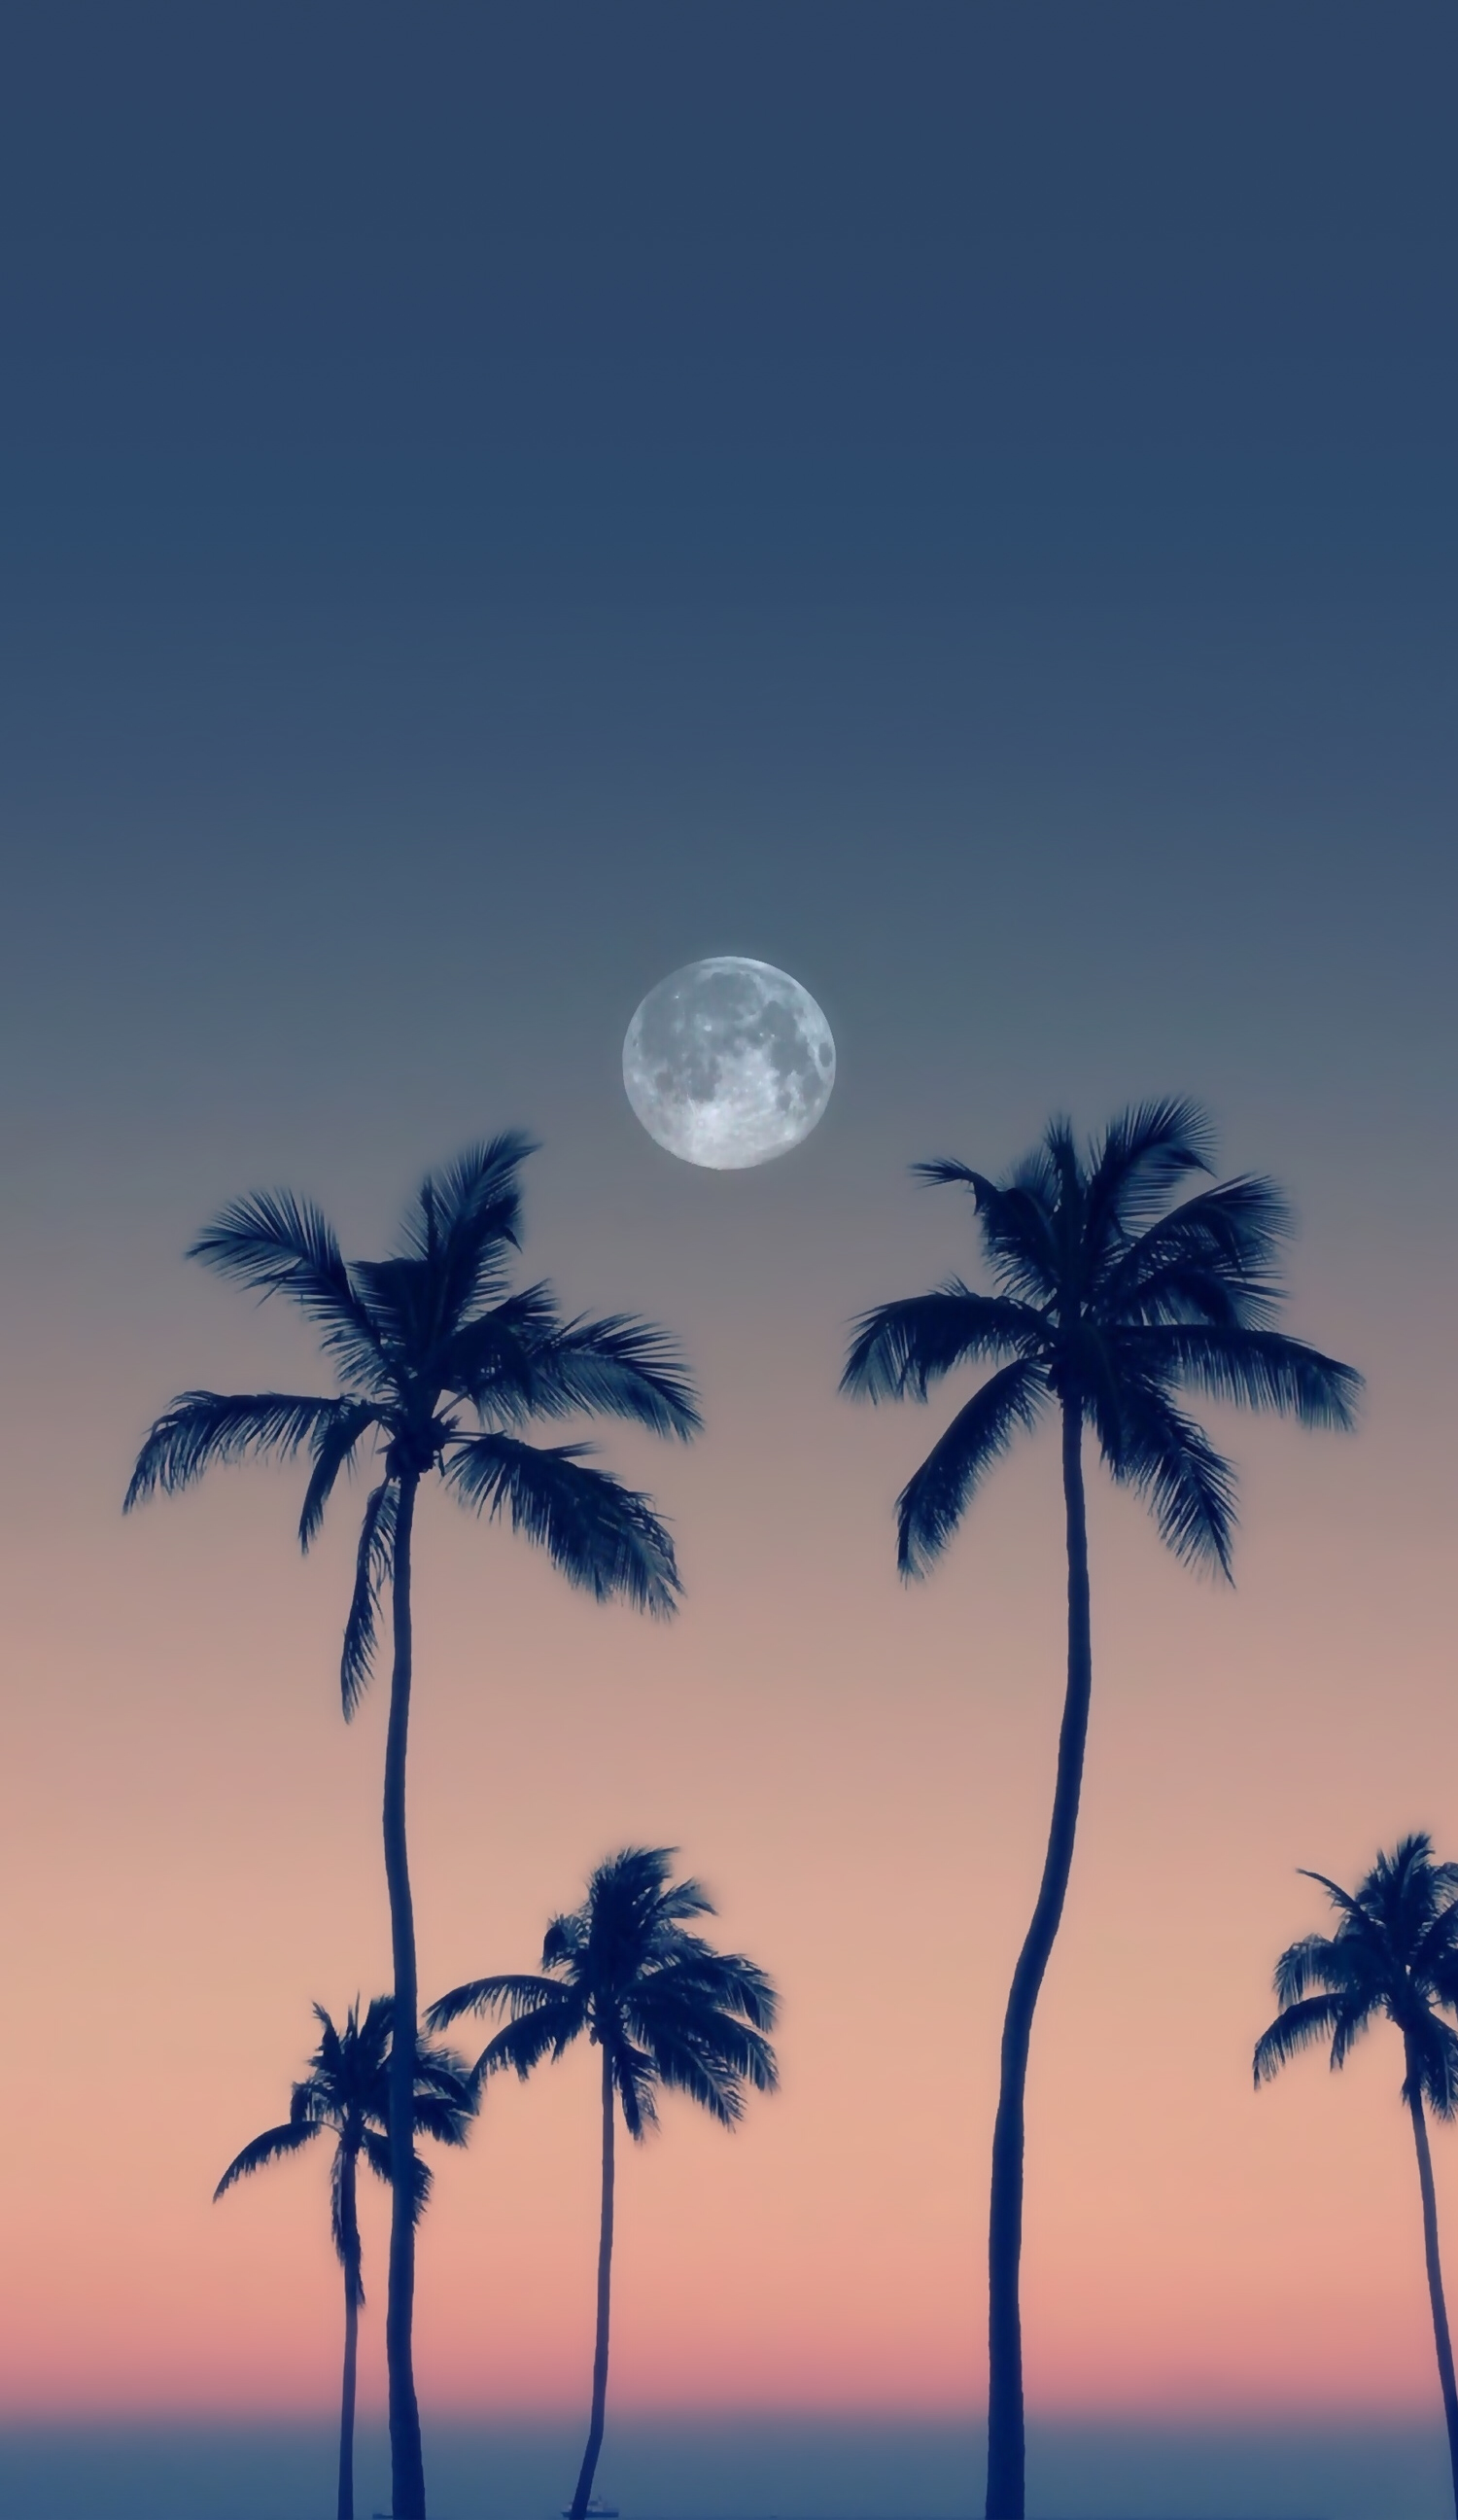 Moon Night Lua Cheia Fotografia De Paisagem Wallpapers